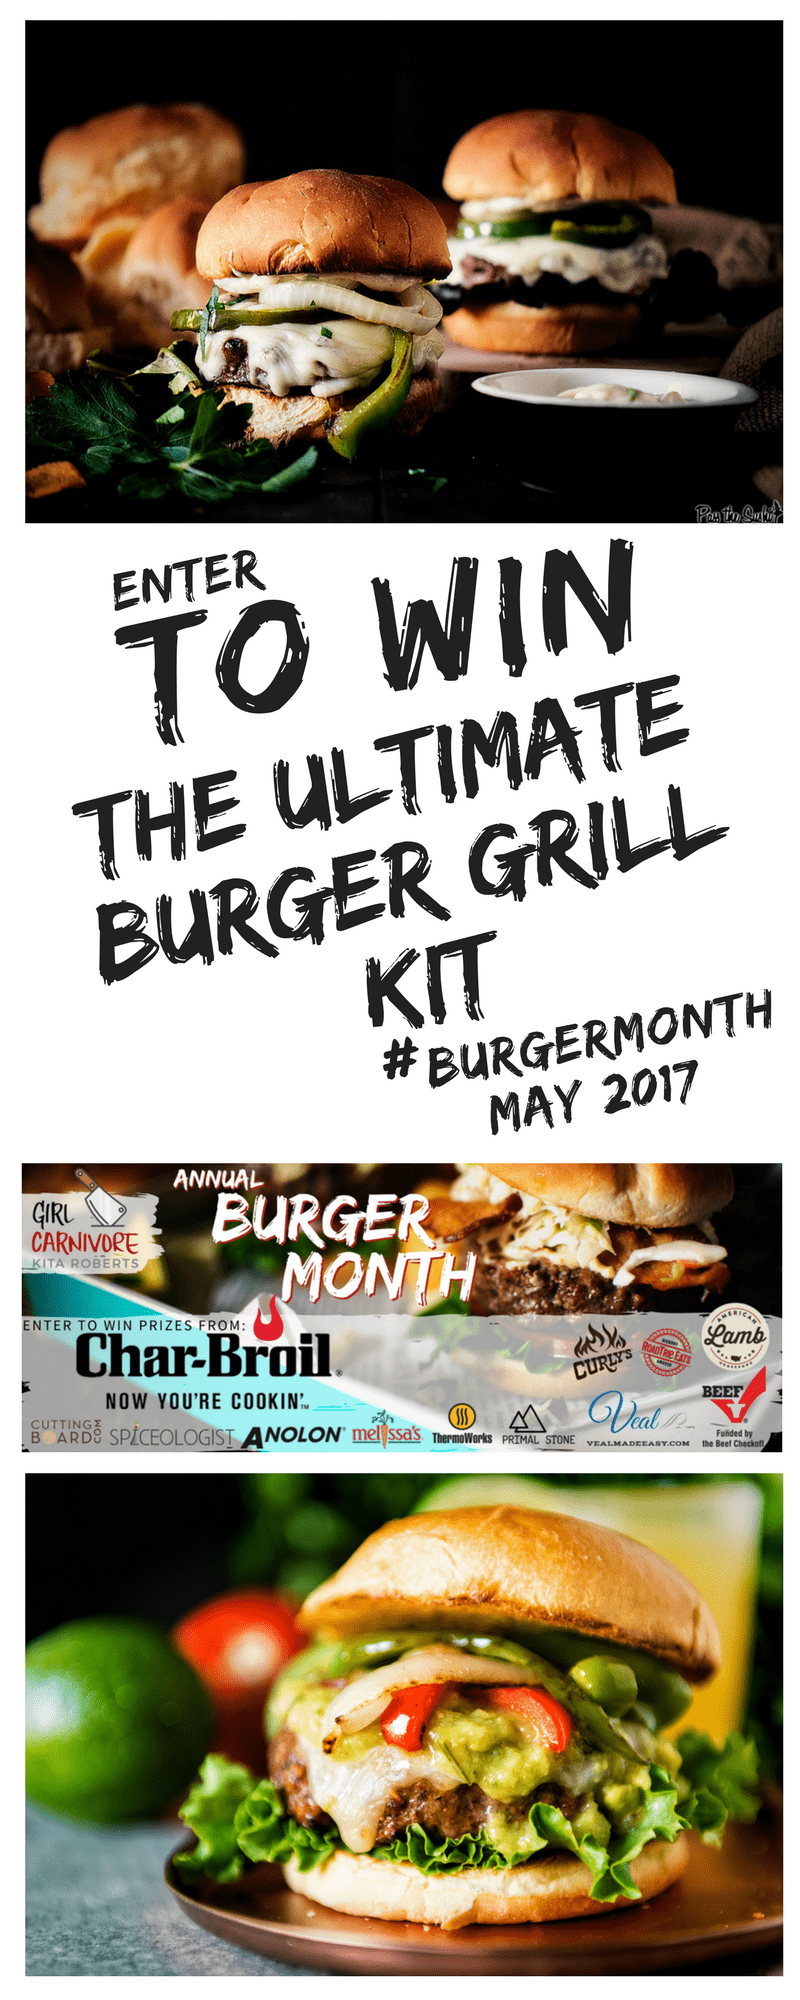 Enter to Win Girl Carnivore's Annual Burger Month Grilling Sweepstakes - with over $800 in epic burger grilling gear